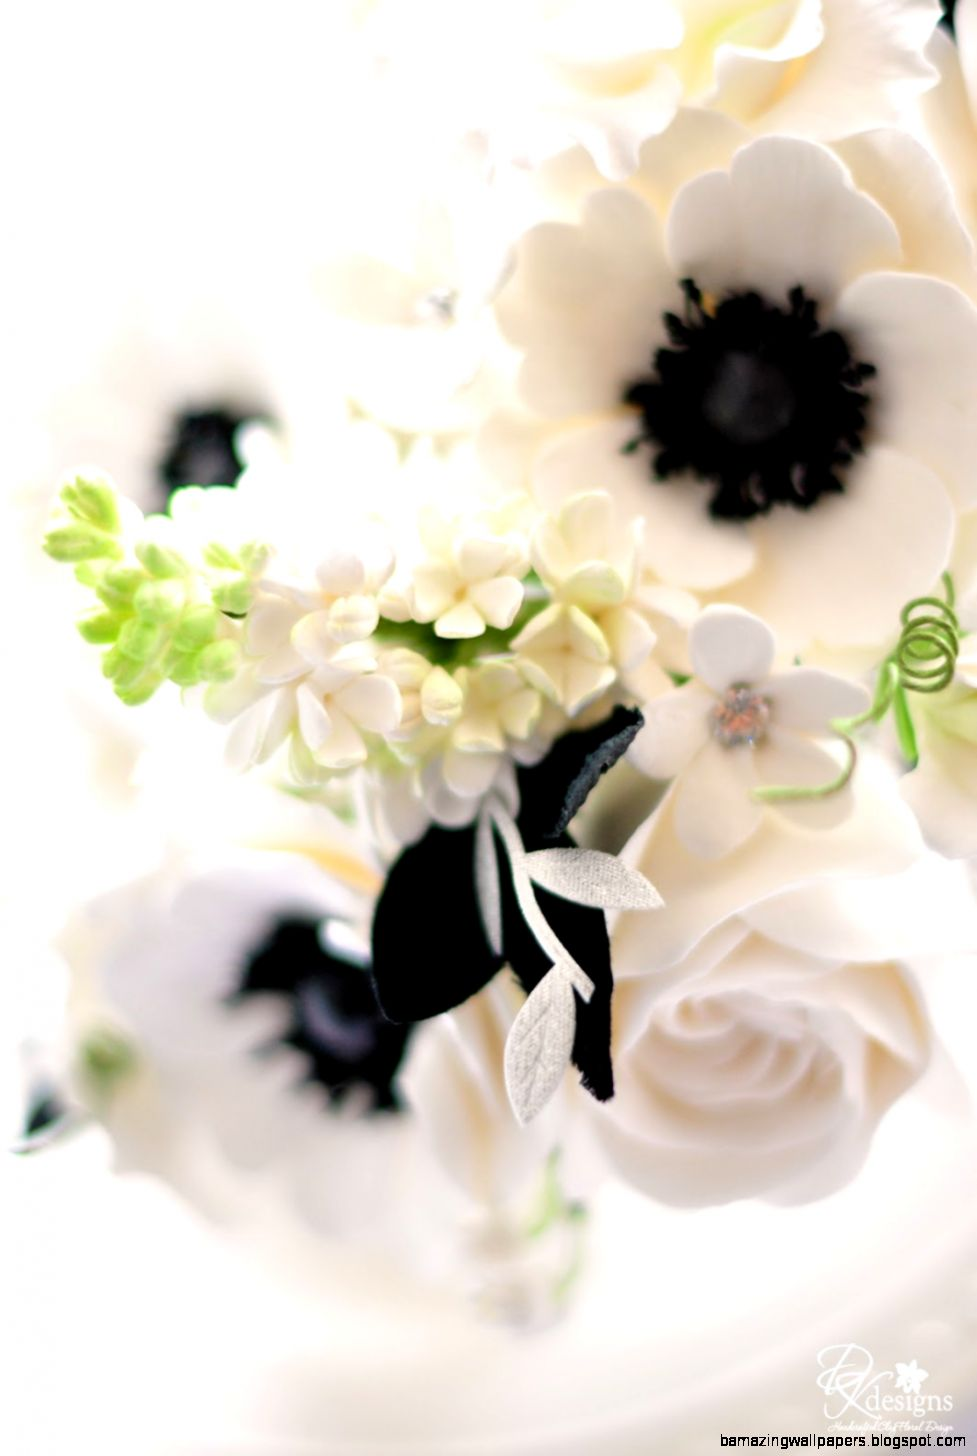 DK Designs White and Black Bouquet for a Southern